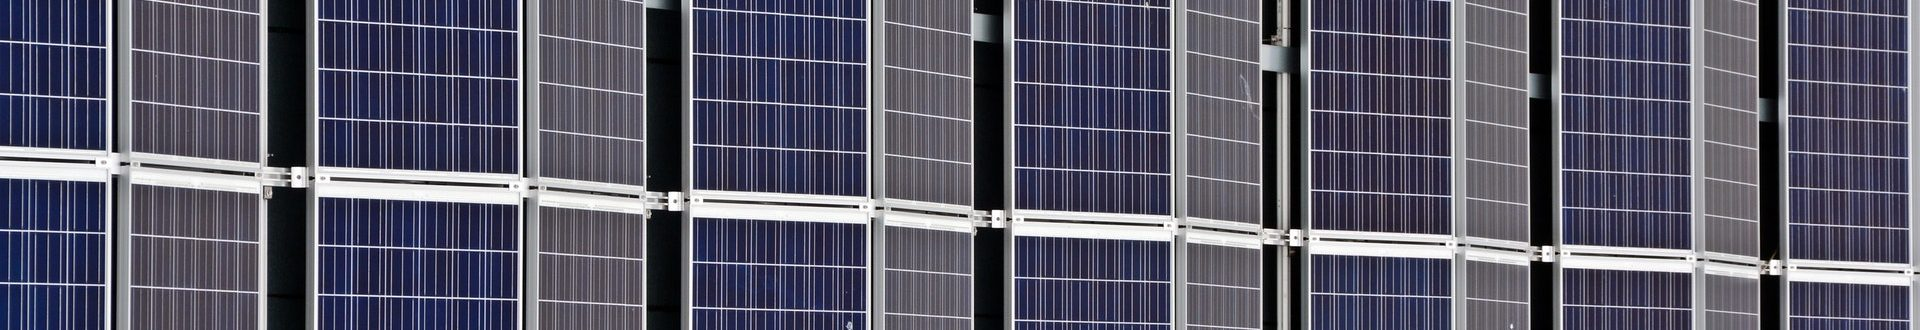 solar-solar-cells-photovoltaic-environmentally-friendly-159243